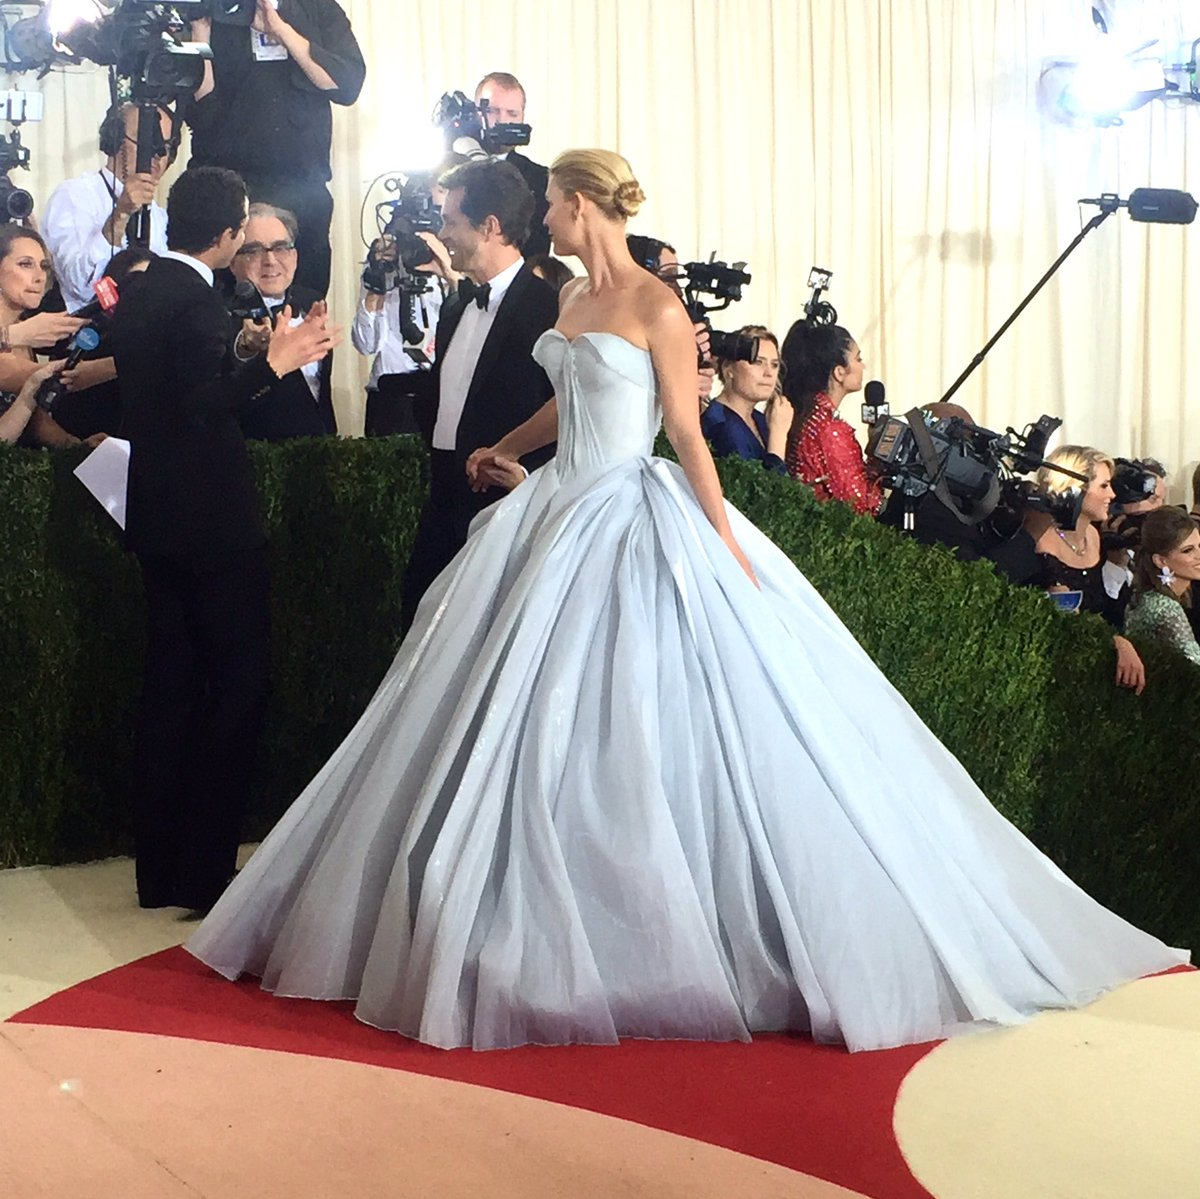 So Claire Danes is Cinderella thanks to @Zac_Posen #MetGala https://t.co/OaMkV7HMo8